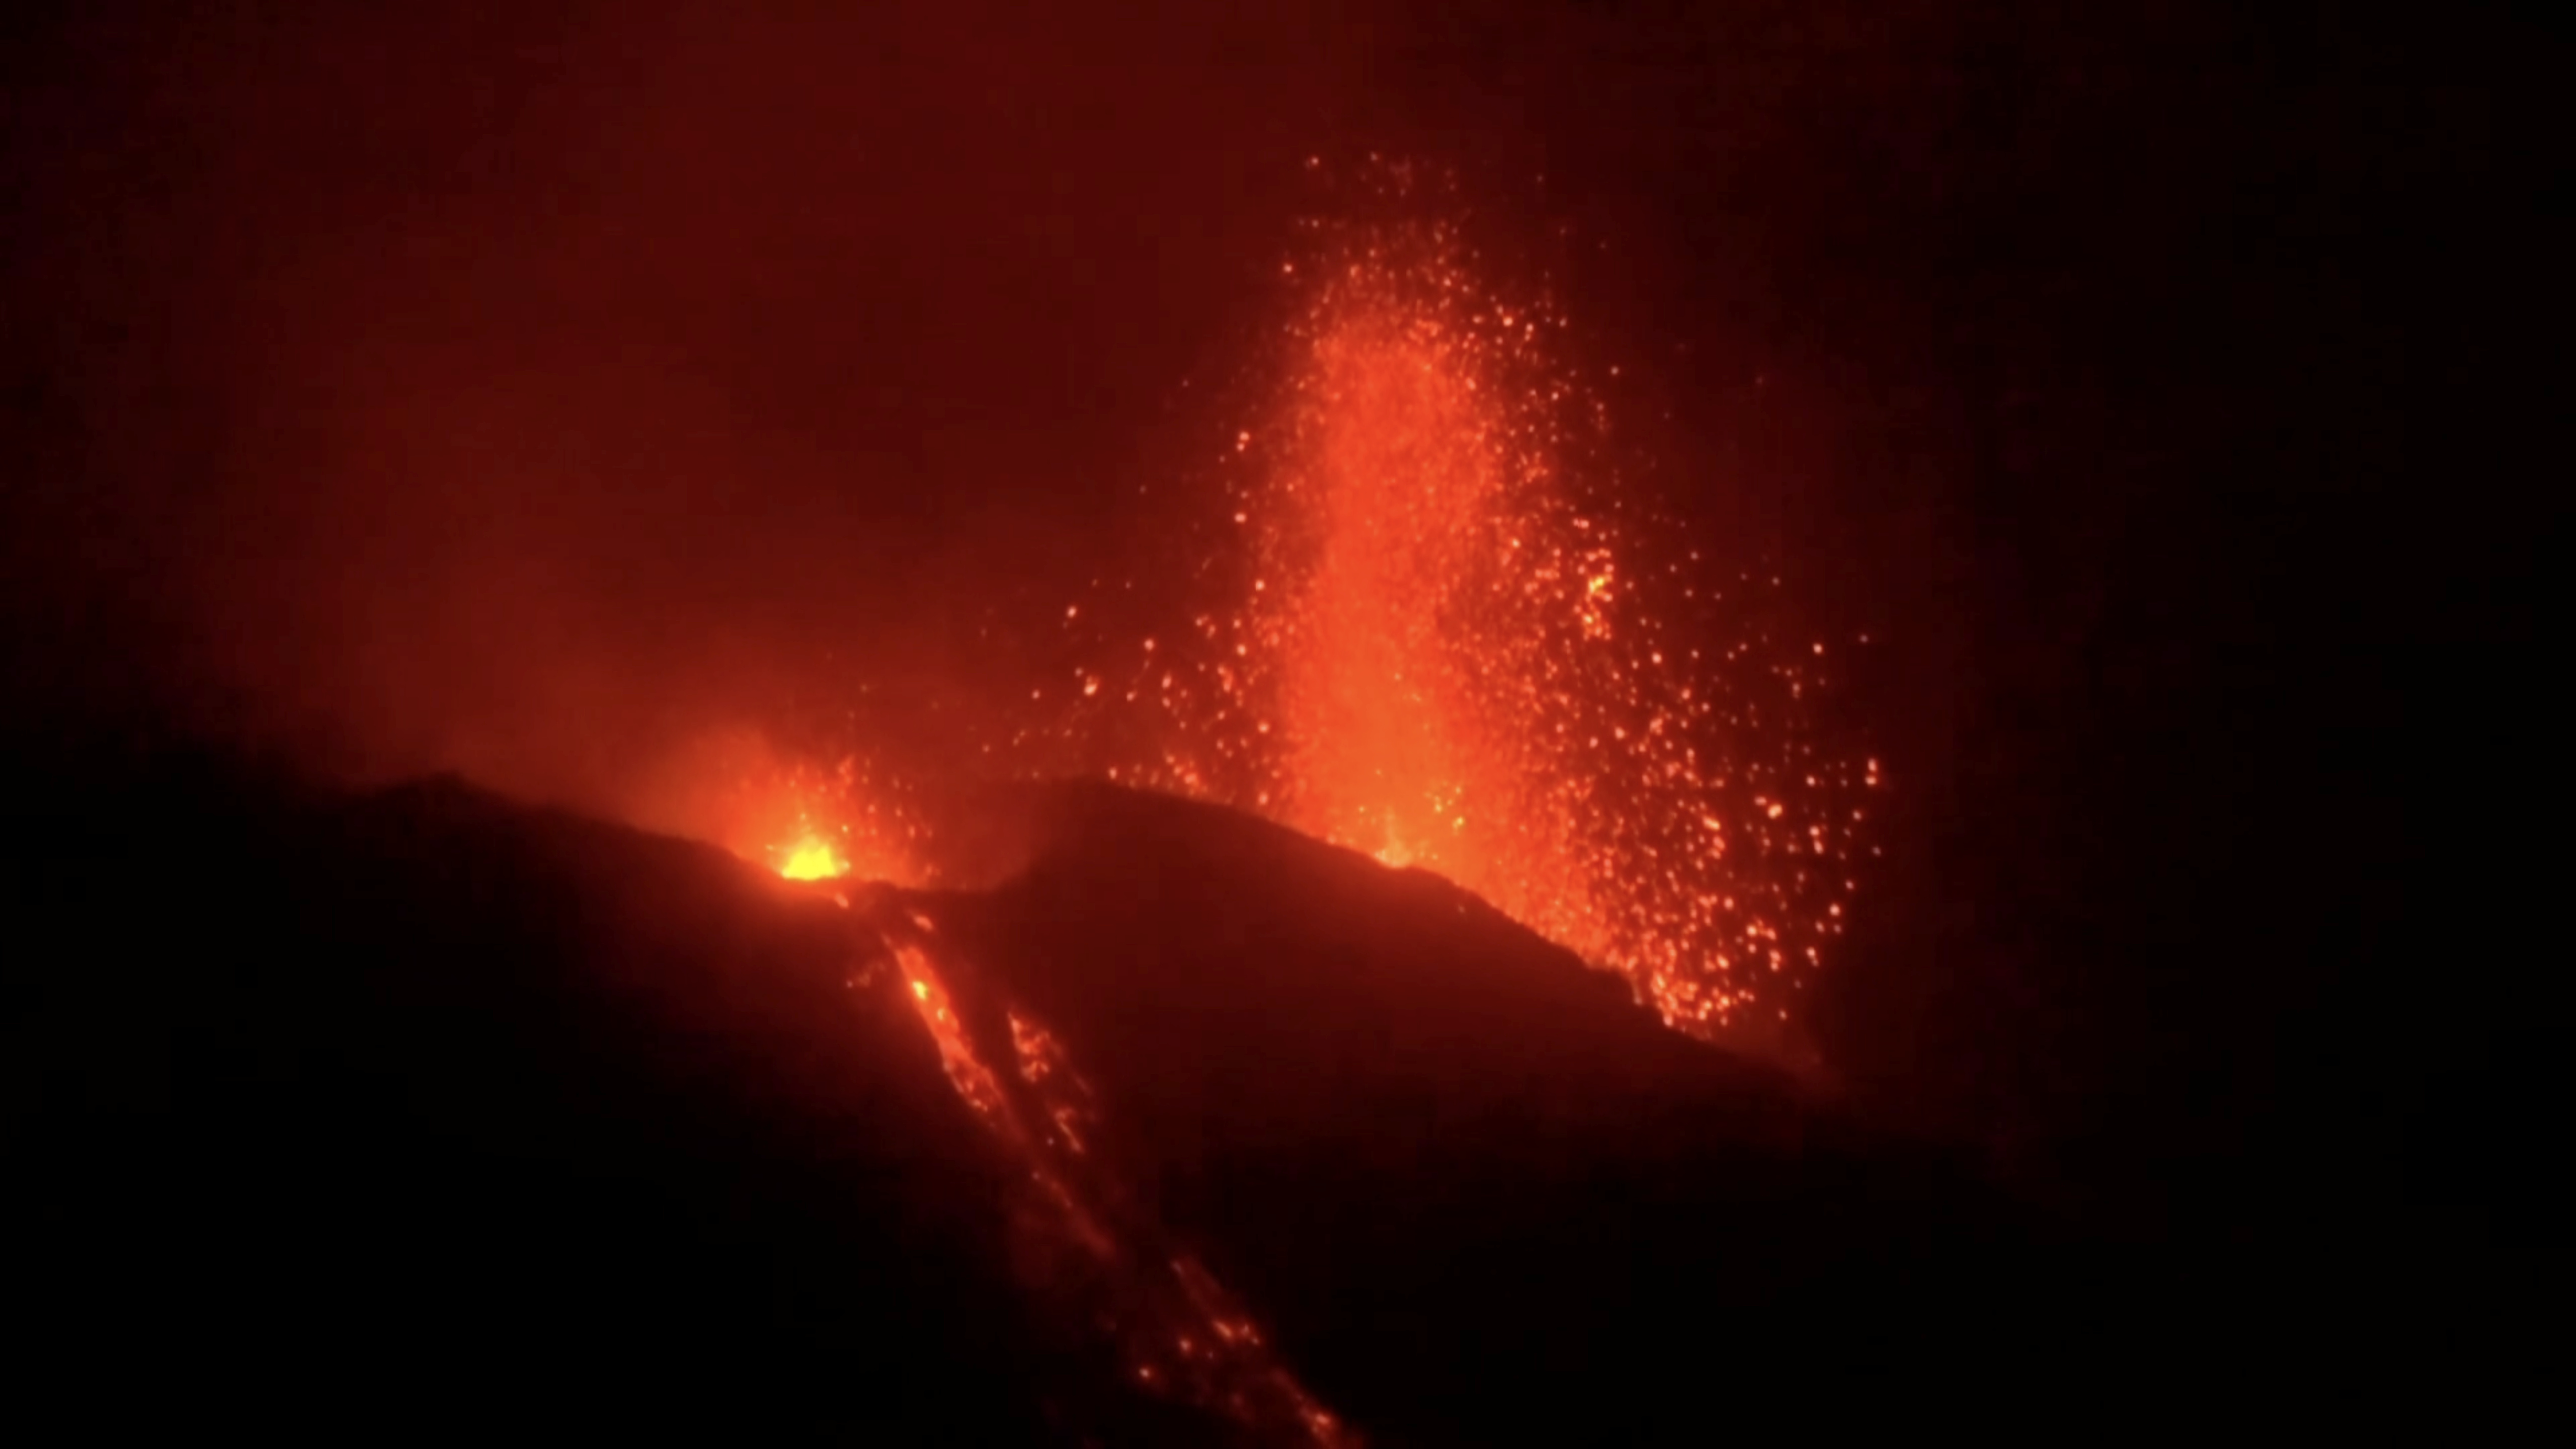 Pictures And Video Of Stromboli Volcano Eruption In Italy Quartz